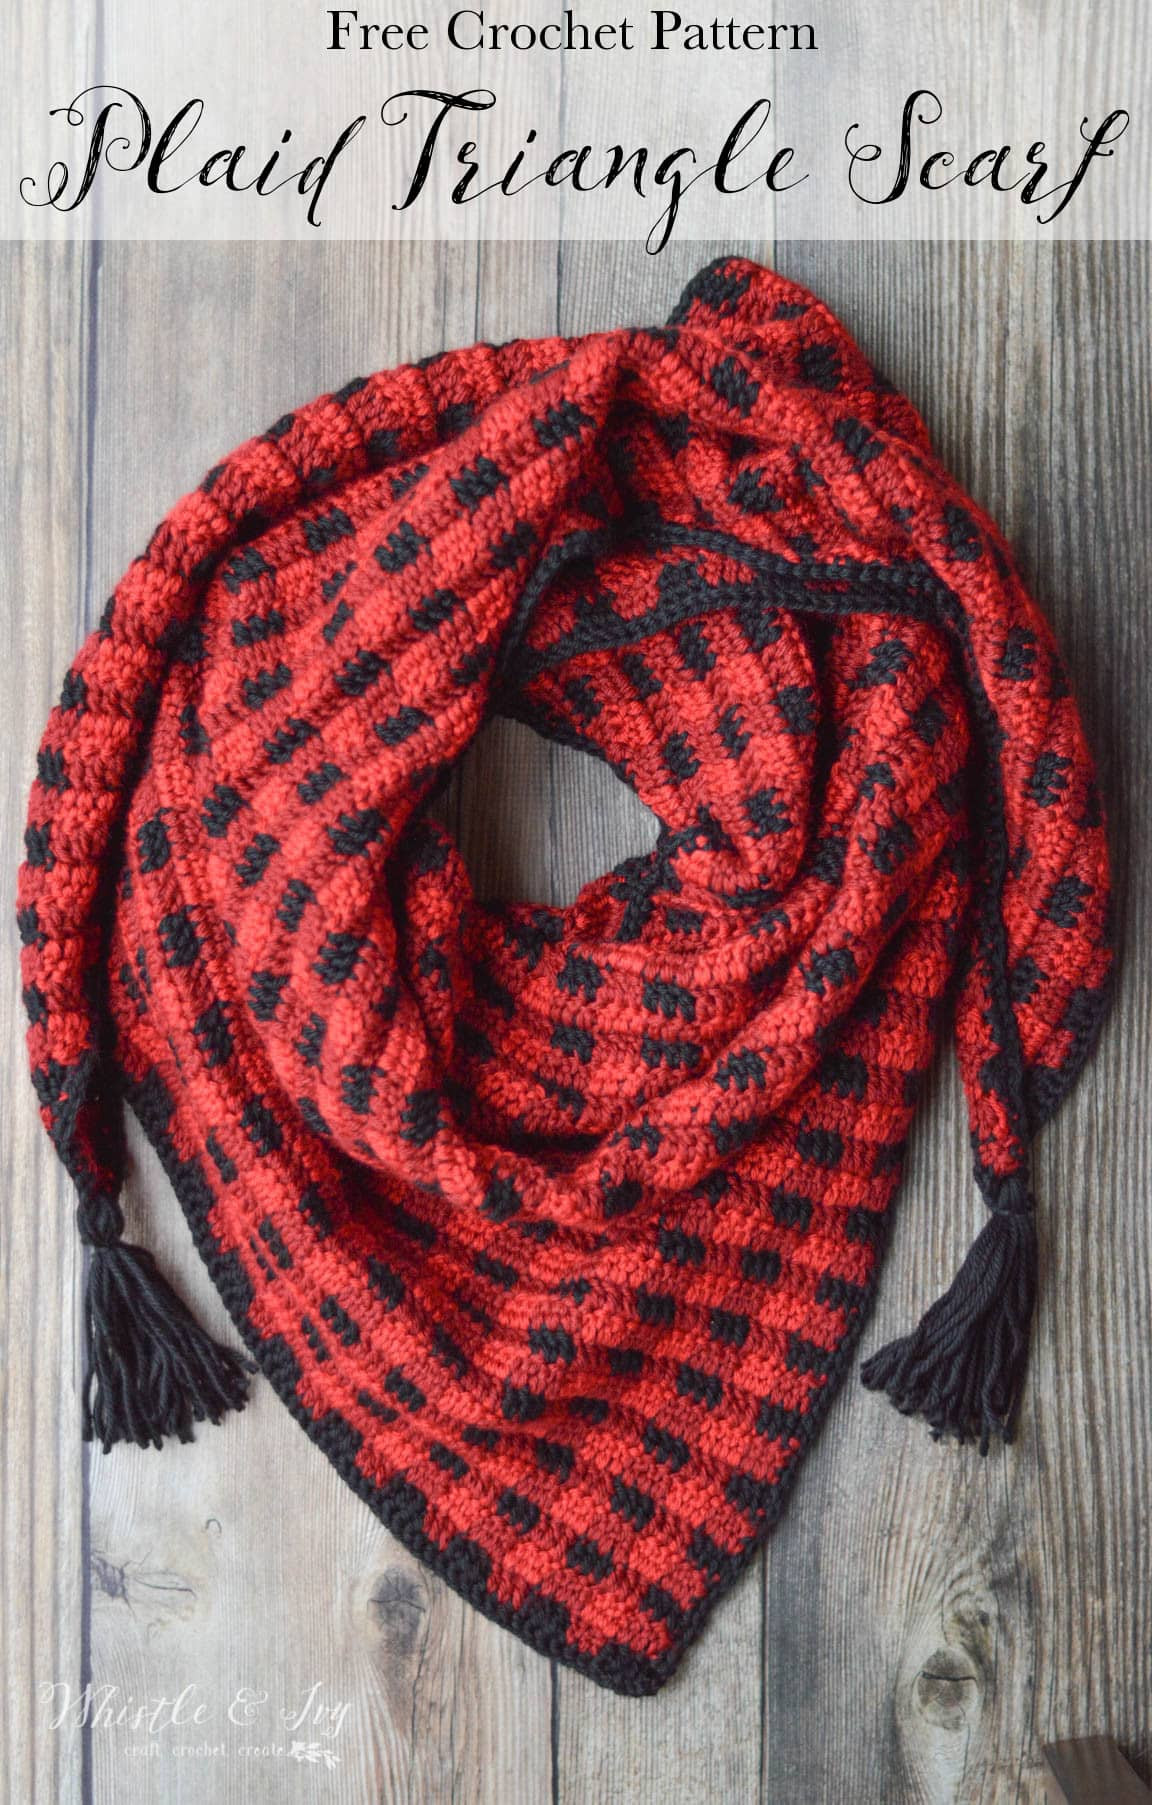 Lovely Crochet Plaid Triangle Scarf Free Crochet Pattern Triangle Scarf Crochet Pattern Of Marvelous 44 Photos Triangle Scarf Crochet Pattern